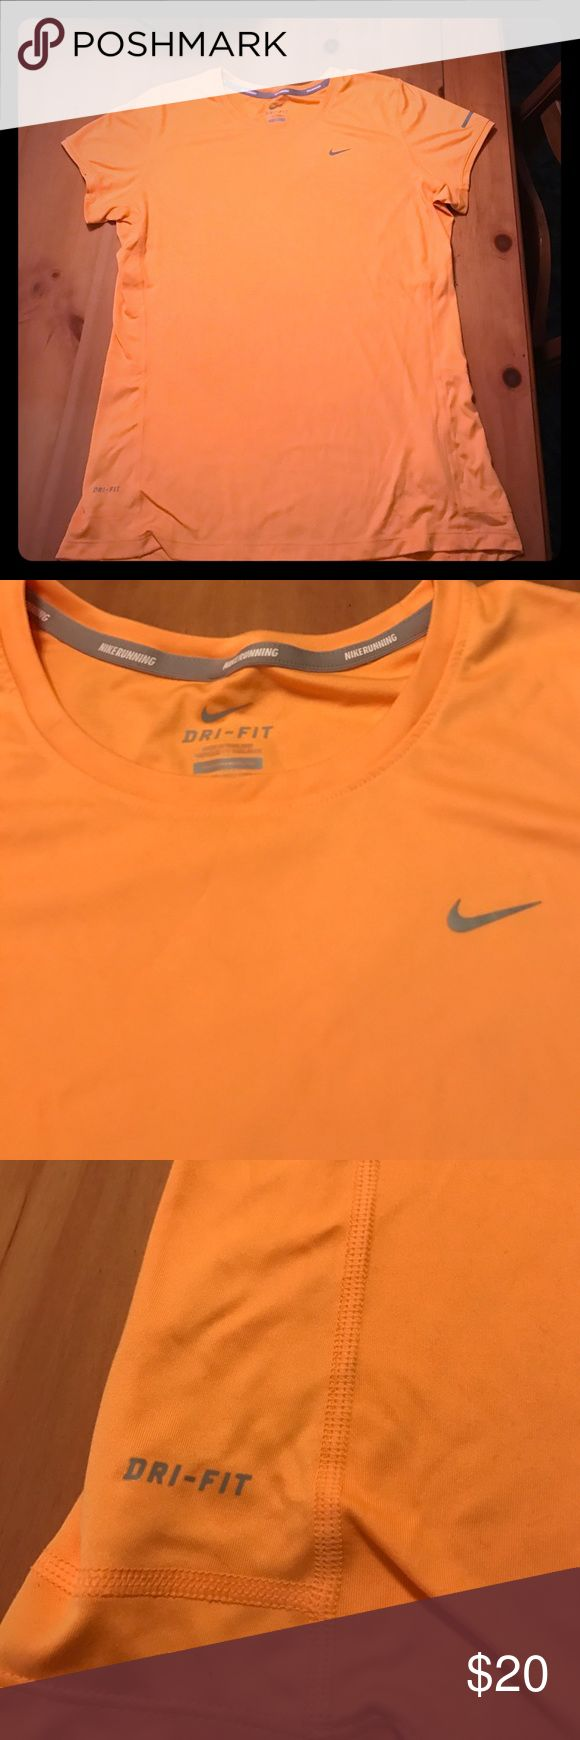 Nike Women's Dri-Fit Shirt Nike women's Dri-fit tshirt. Light orange. Comfortable, stretchy, soft material. 100% recycled polyester. Worn gently twice no signs of wear. Nike Tops Tees - Short Sleeve